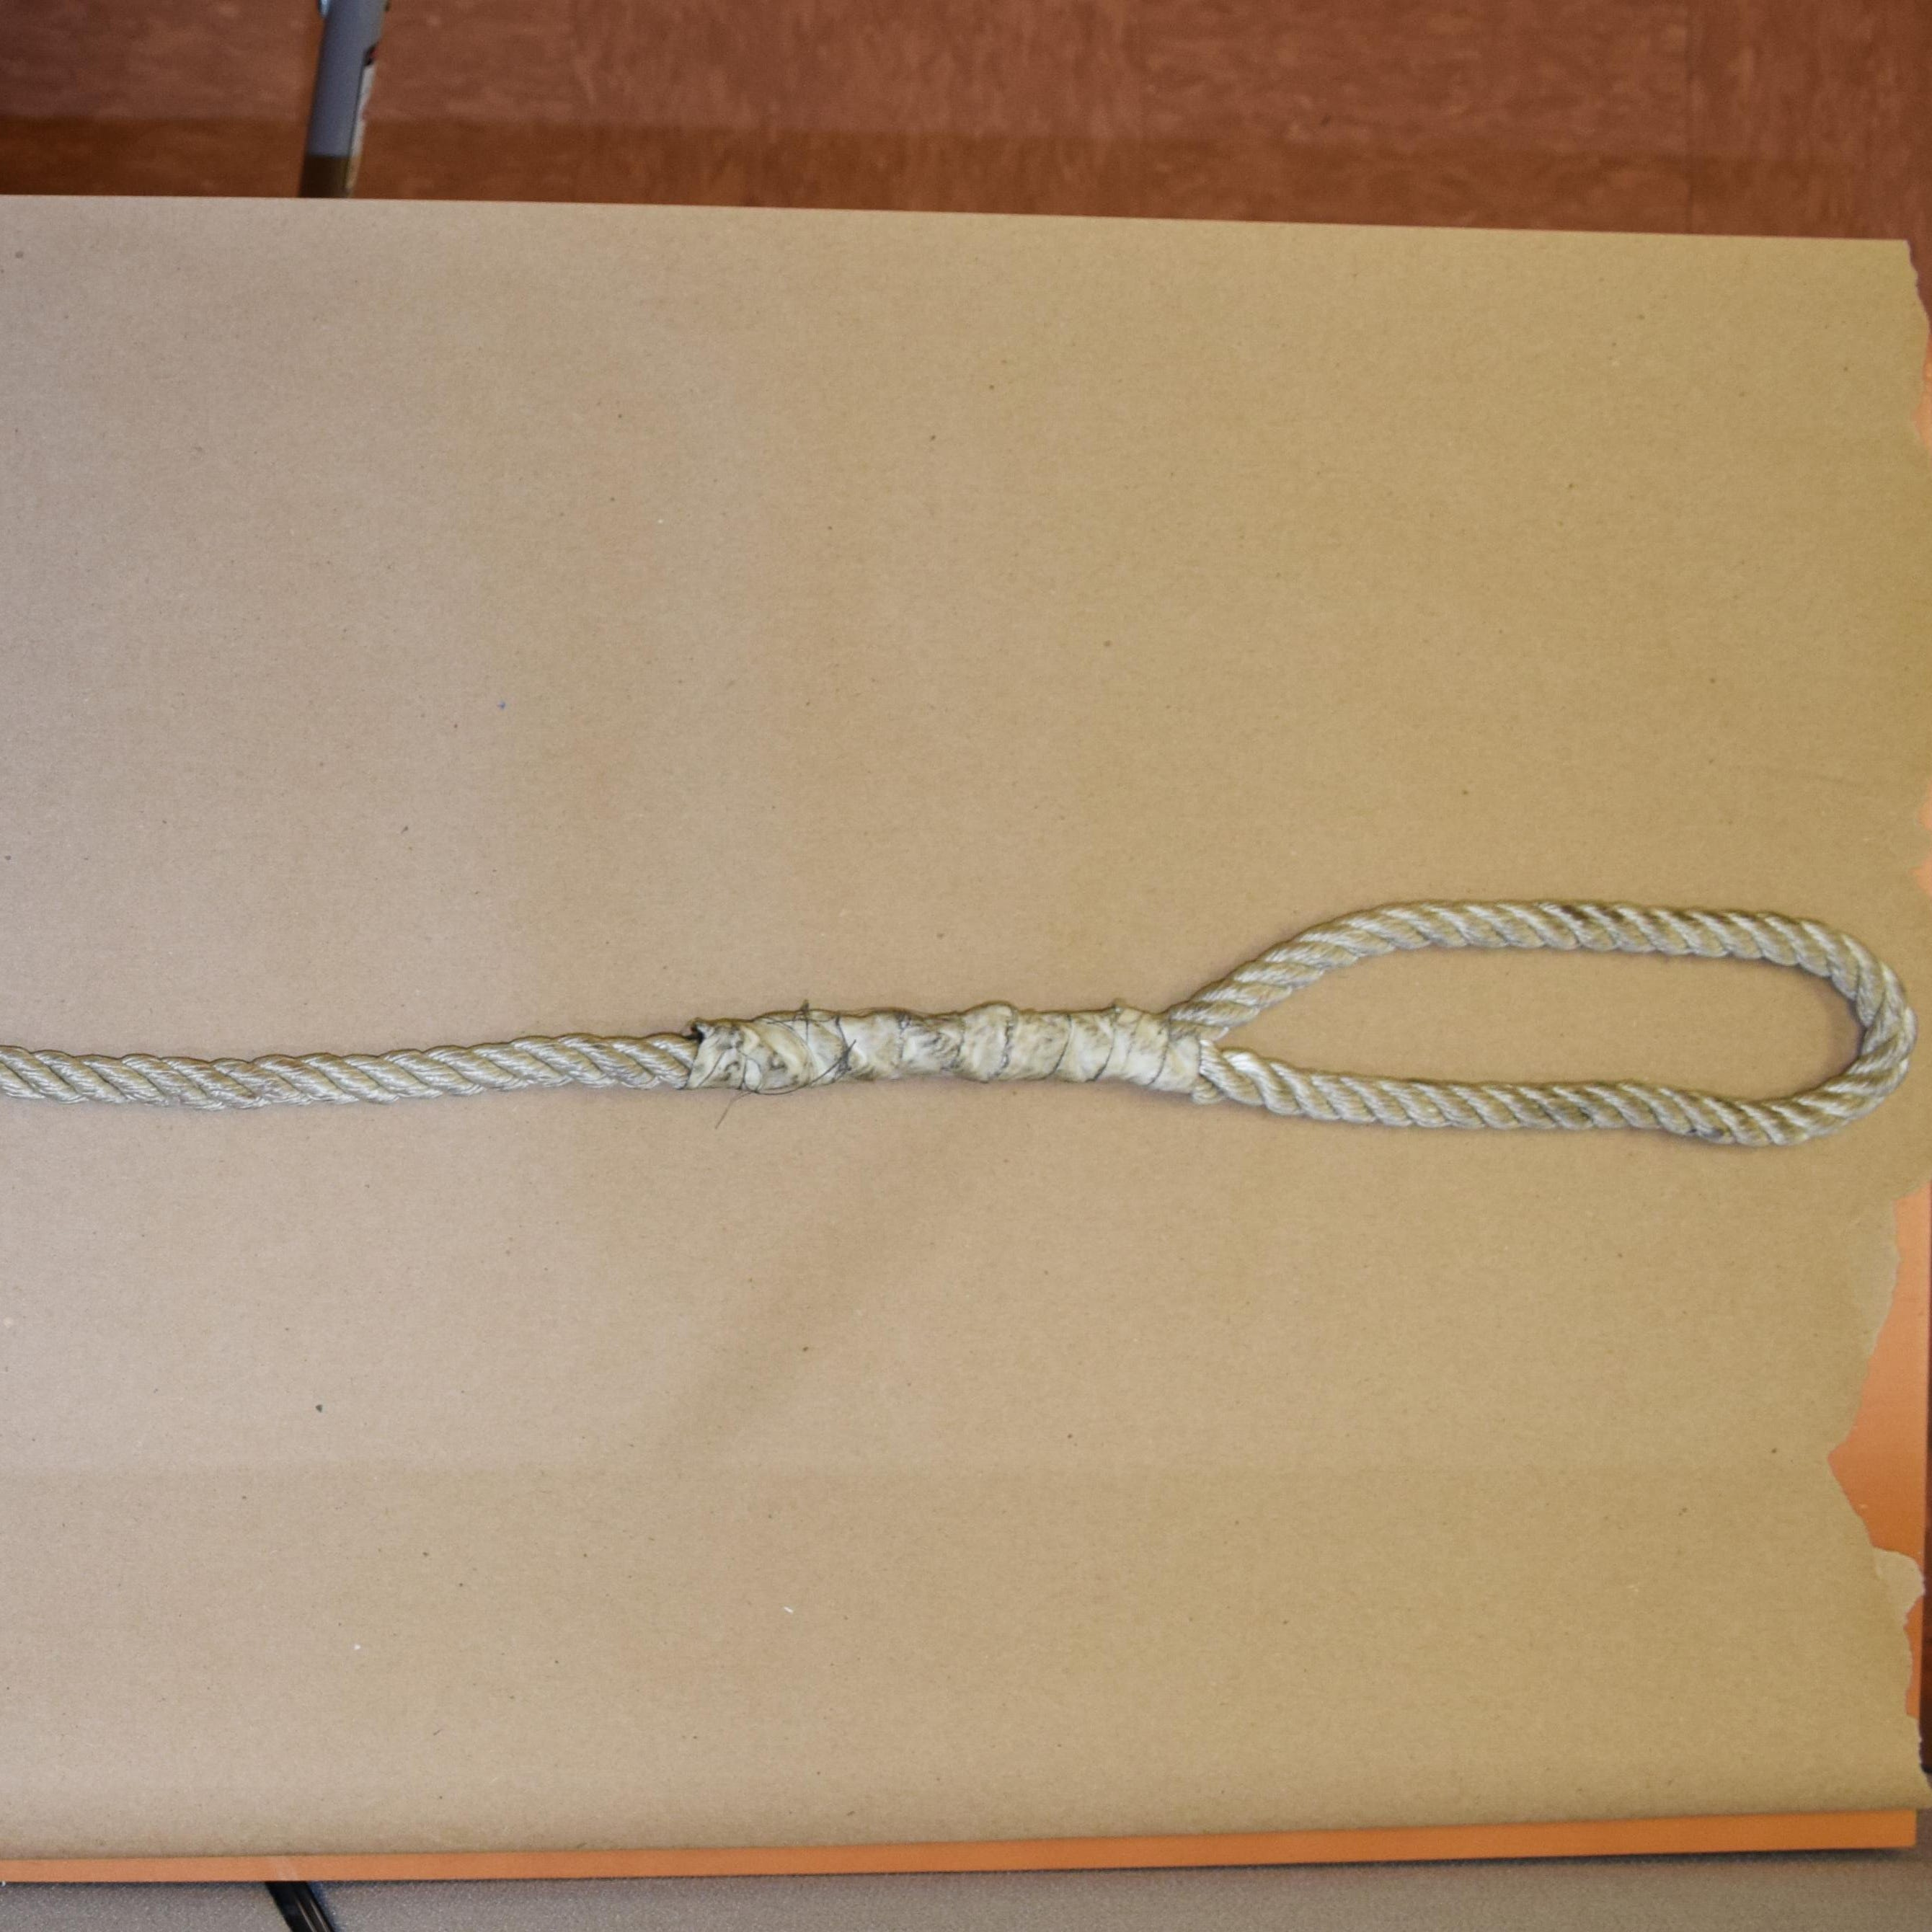 Englewood Hospital employee sues over noose found in workplace